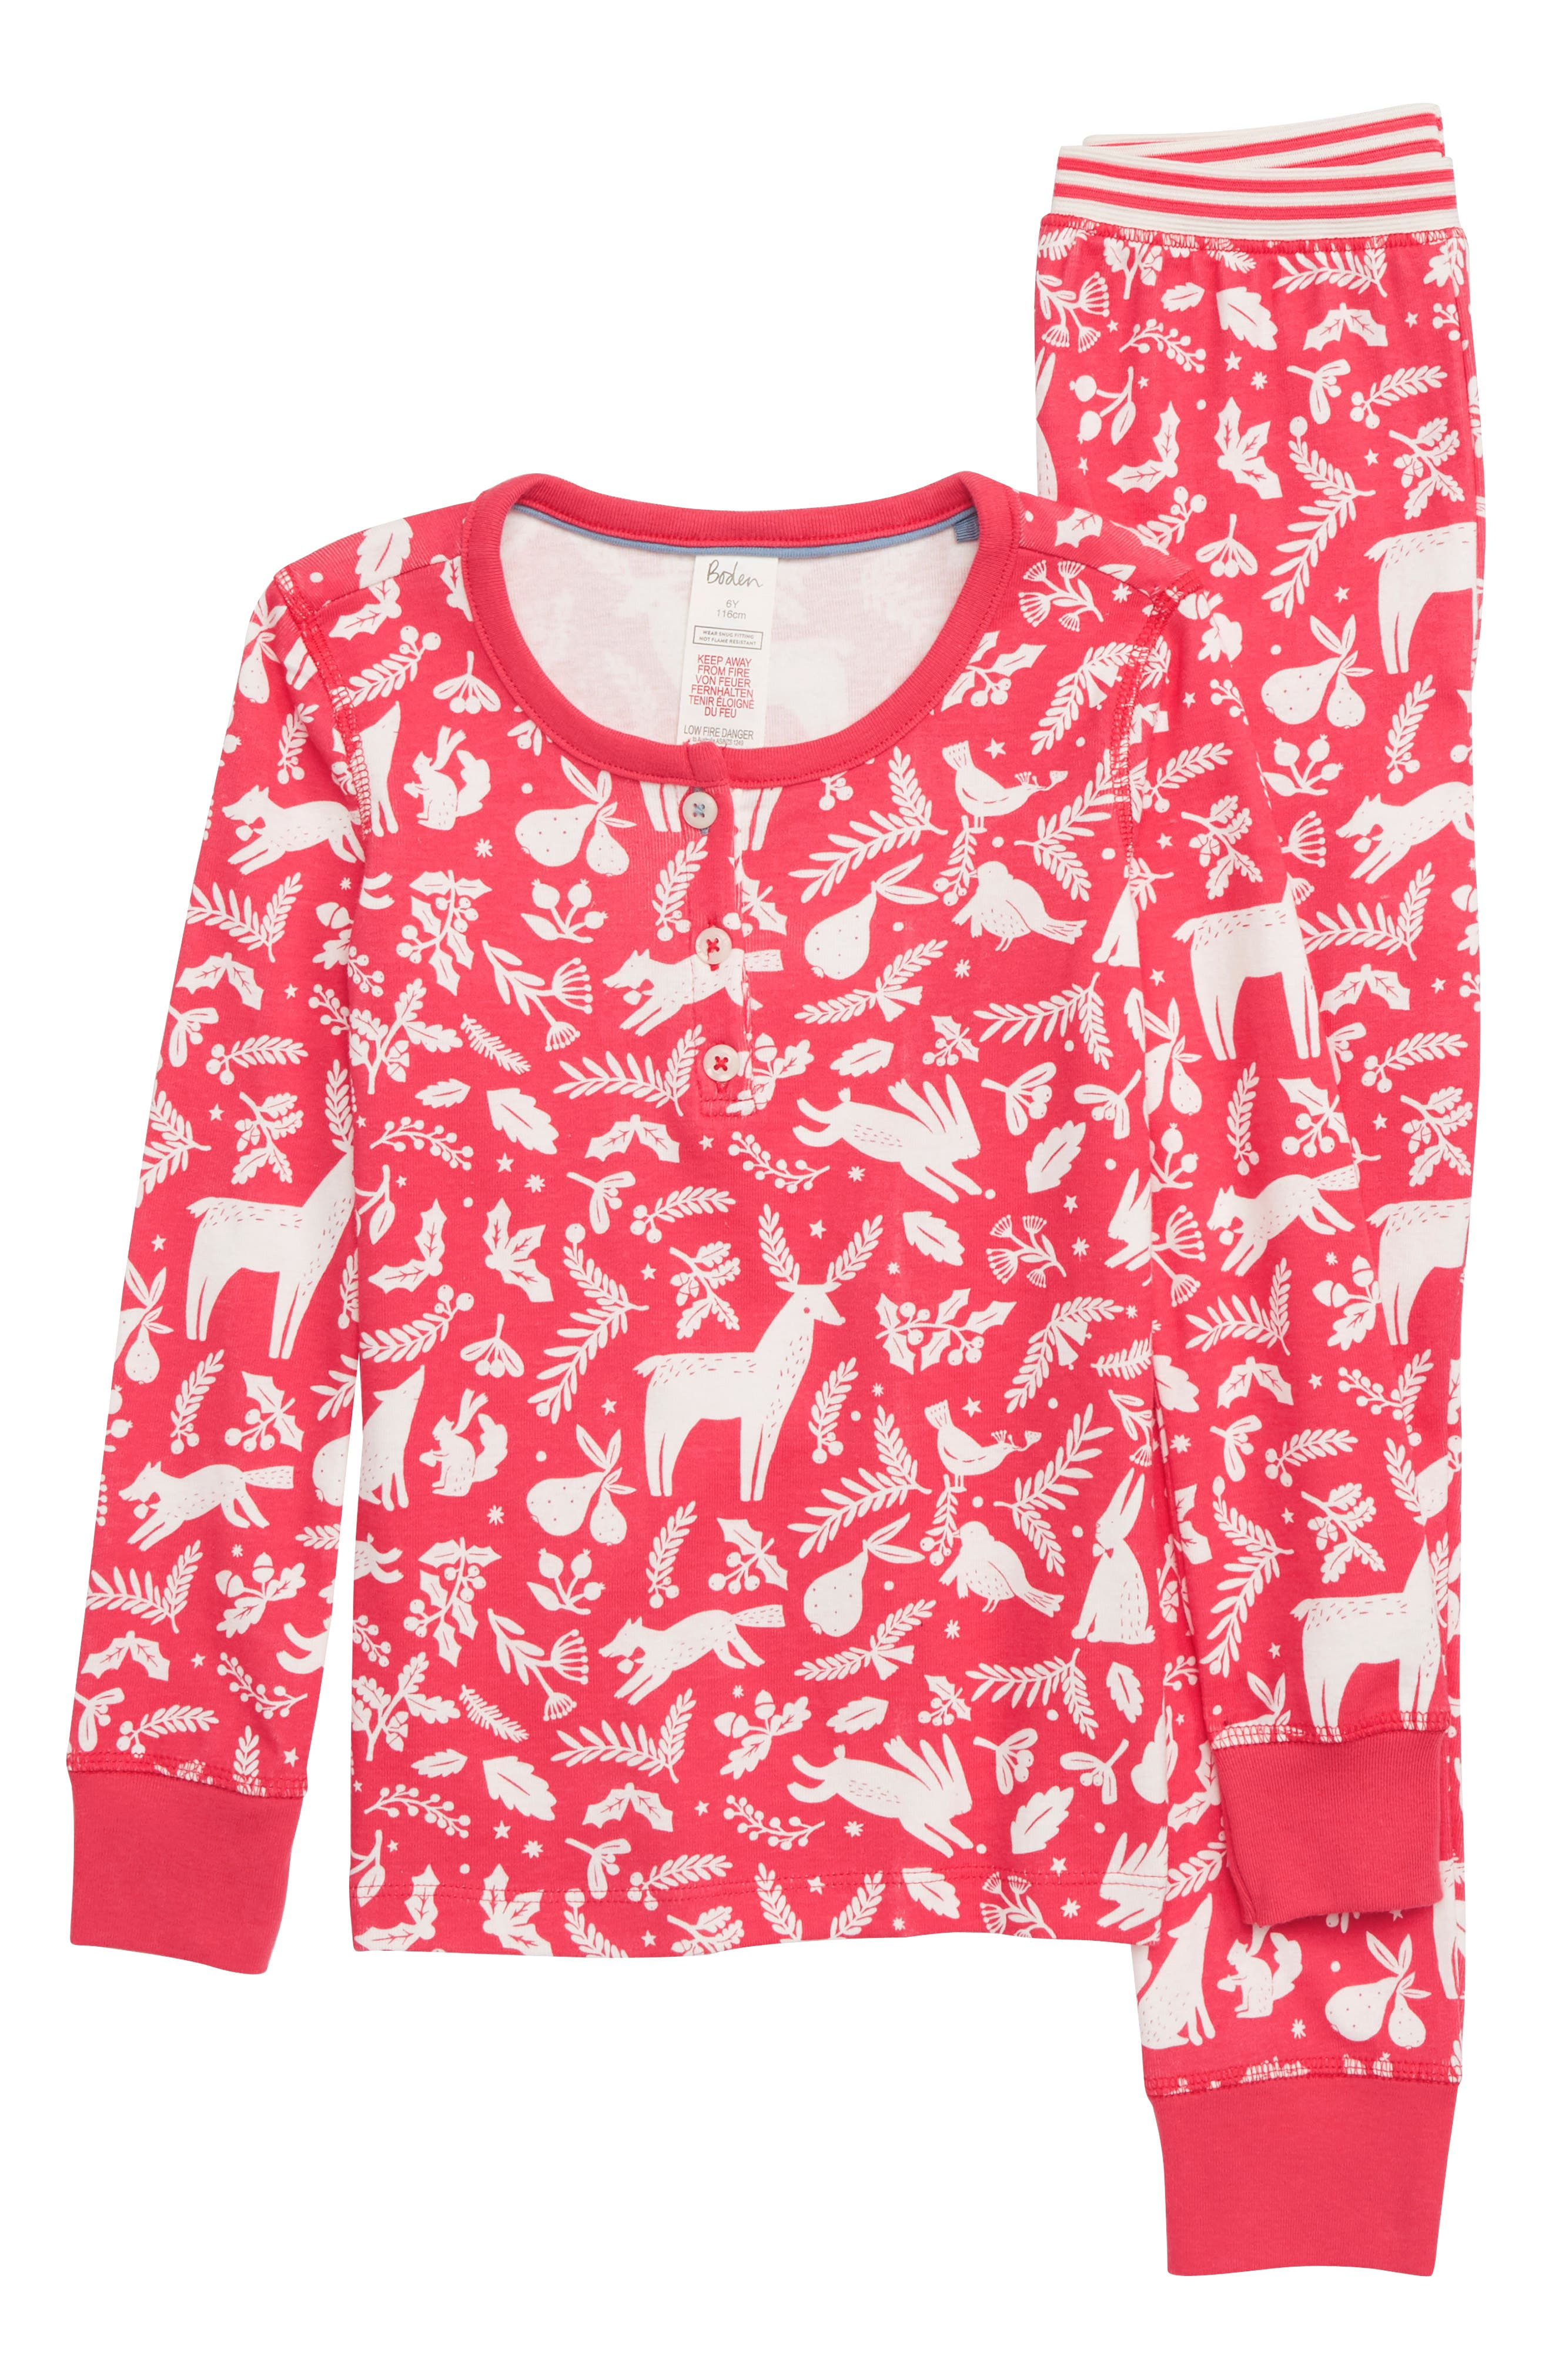 MINI BODEN Fitted Two-Piece Pajamas, Main, color, 654